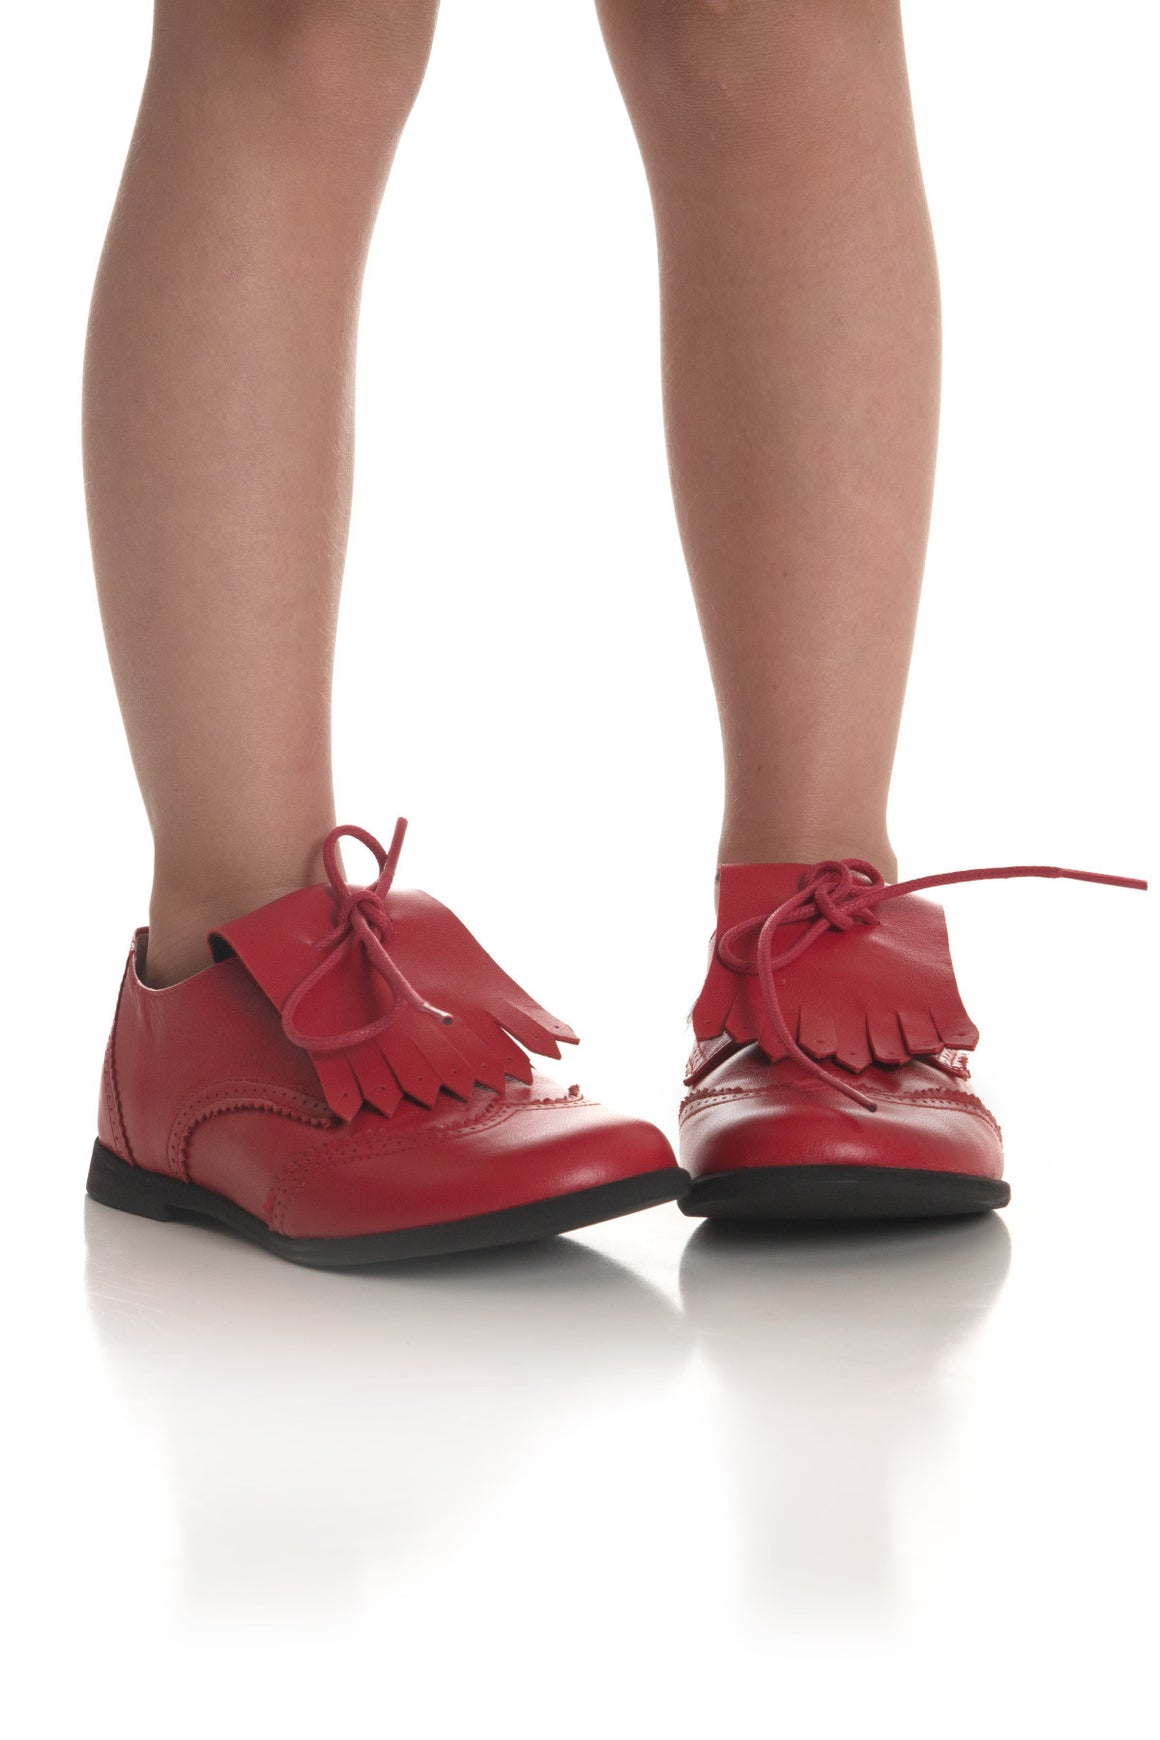 Berkely Shoe- Fringe Red